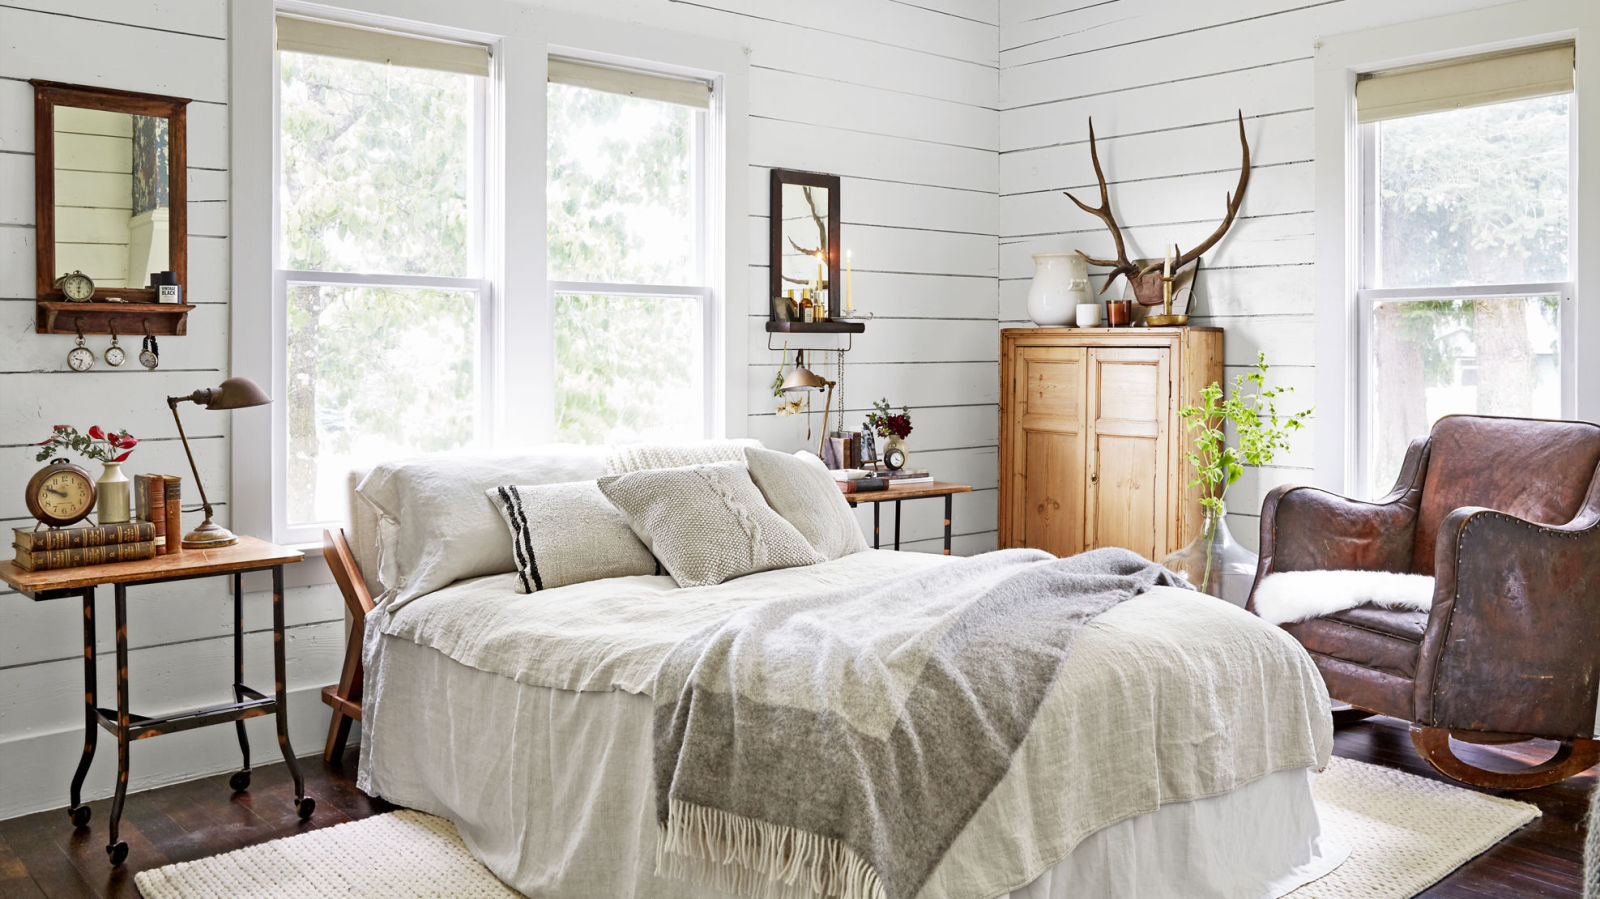 #1 Keep It Soothing - Use neutrals to seamlessly blend eras